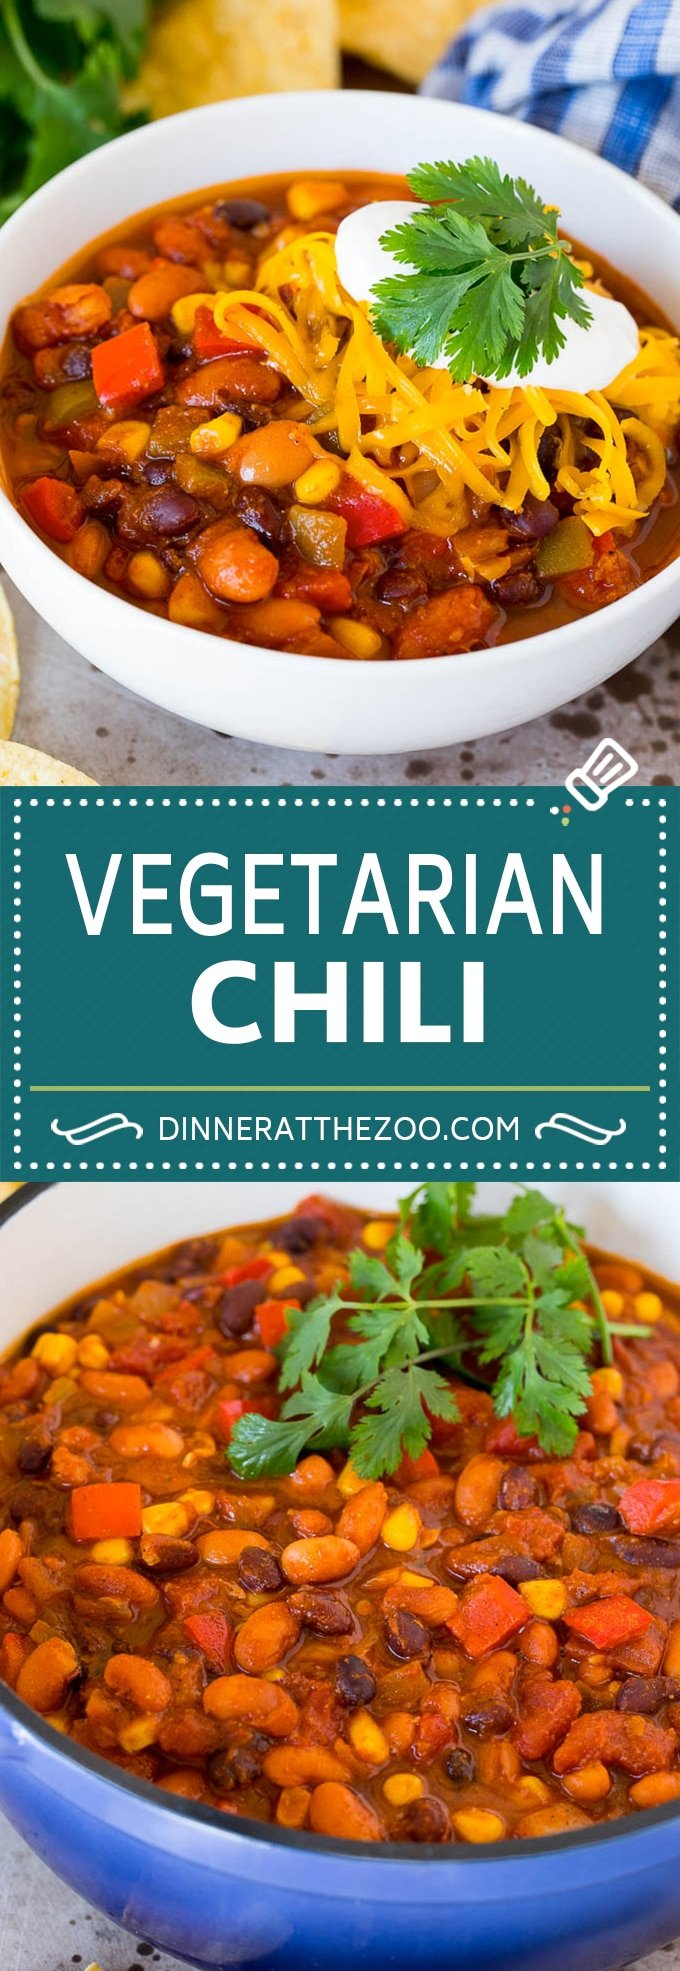 This vegetarian chili is a blend of colorful vegetables, two types of beans and tomatoes.